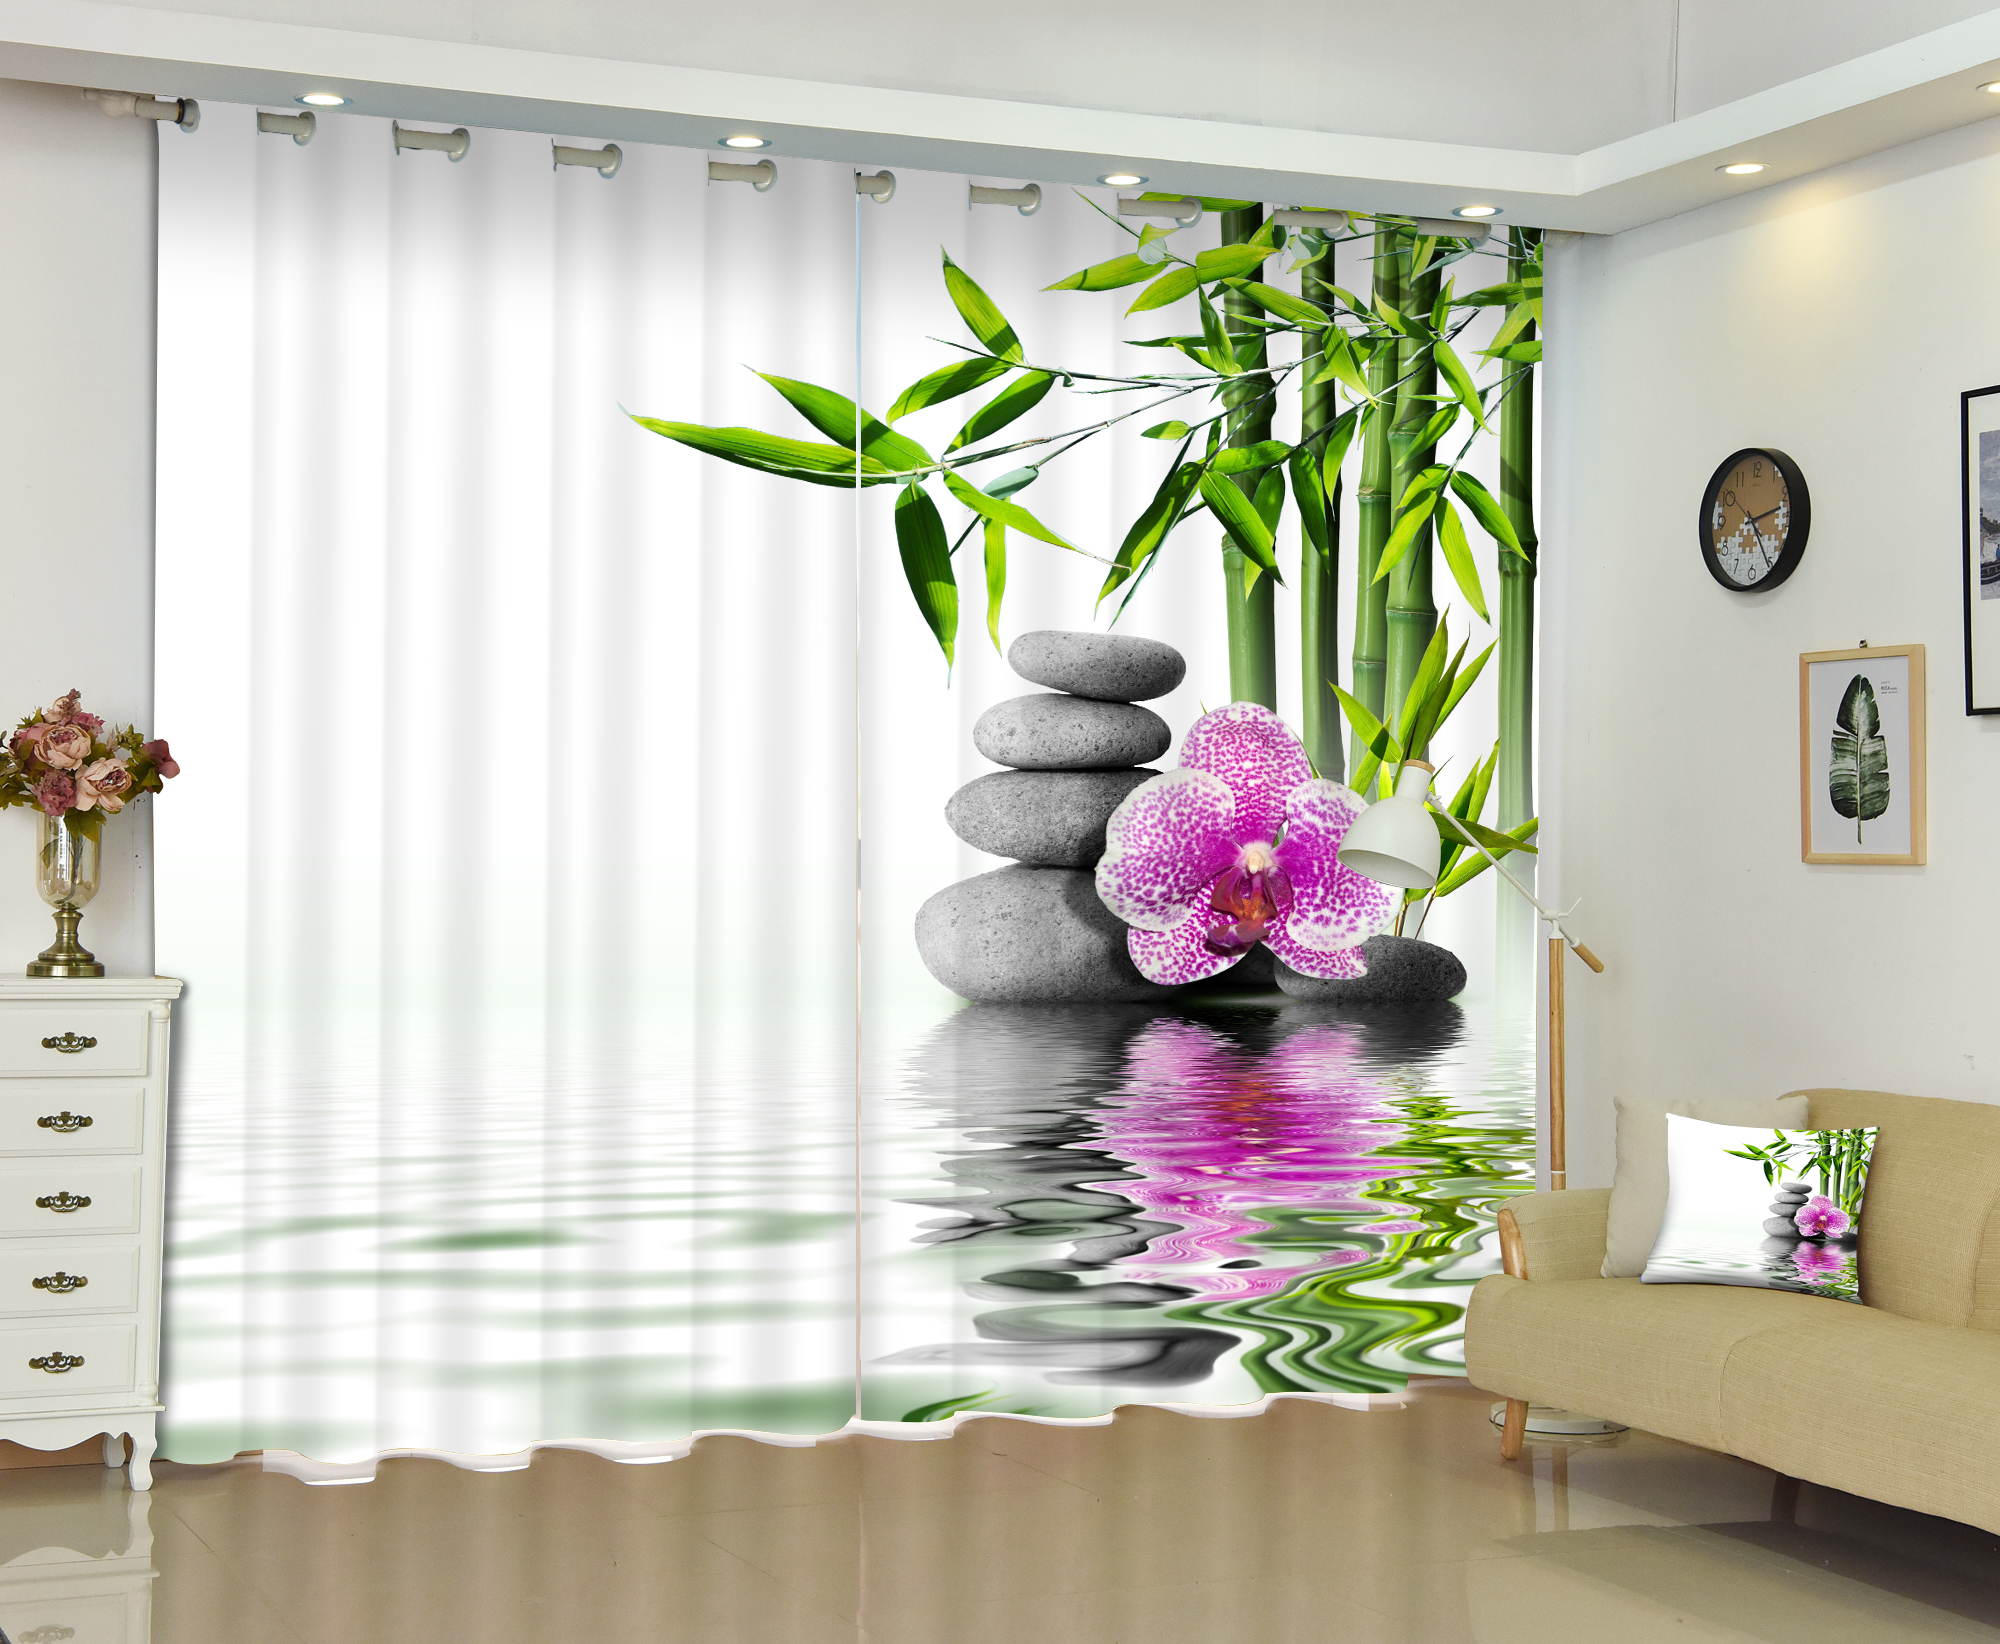 3D Bamboo Water Artistic Conception Photo Window Curtain Customized Size for Living Room Bedding Room Hotel